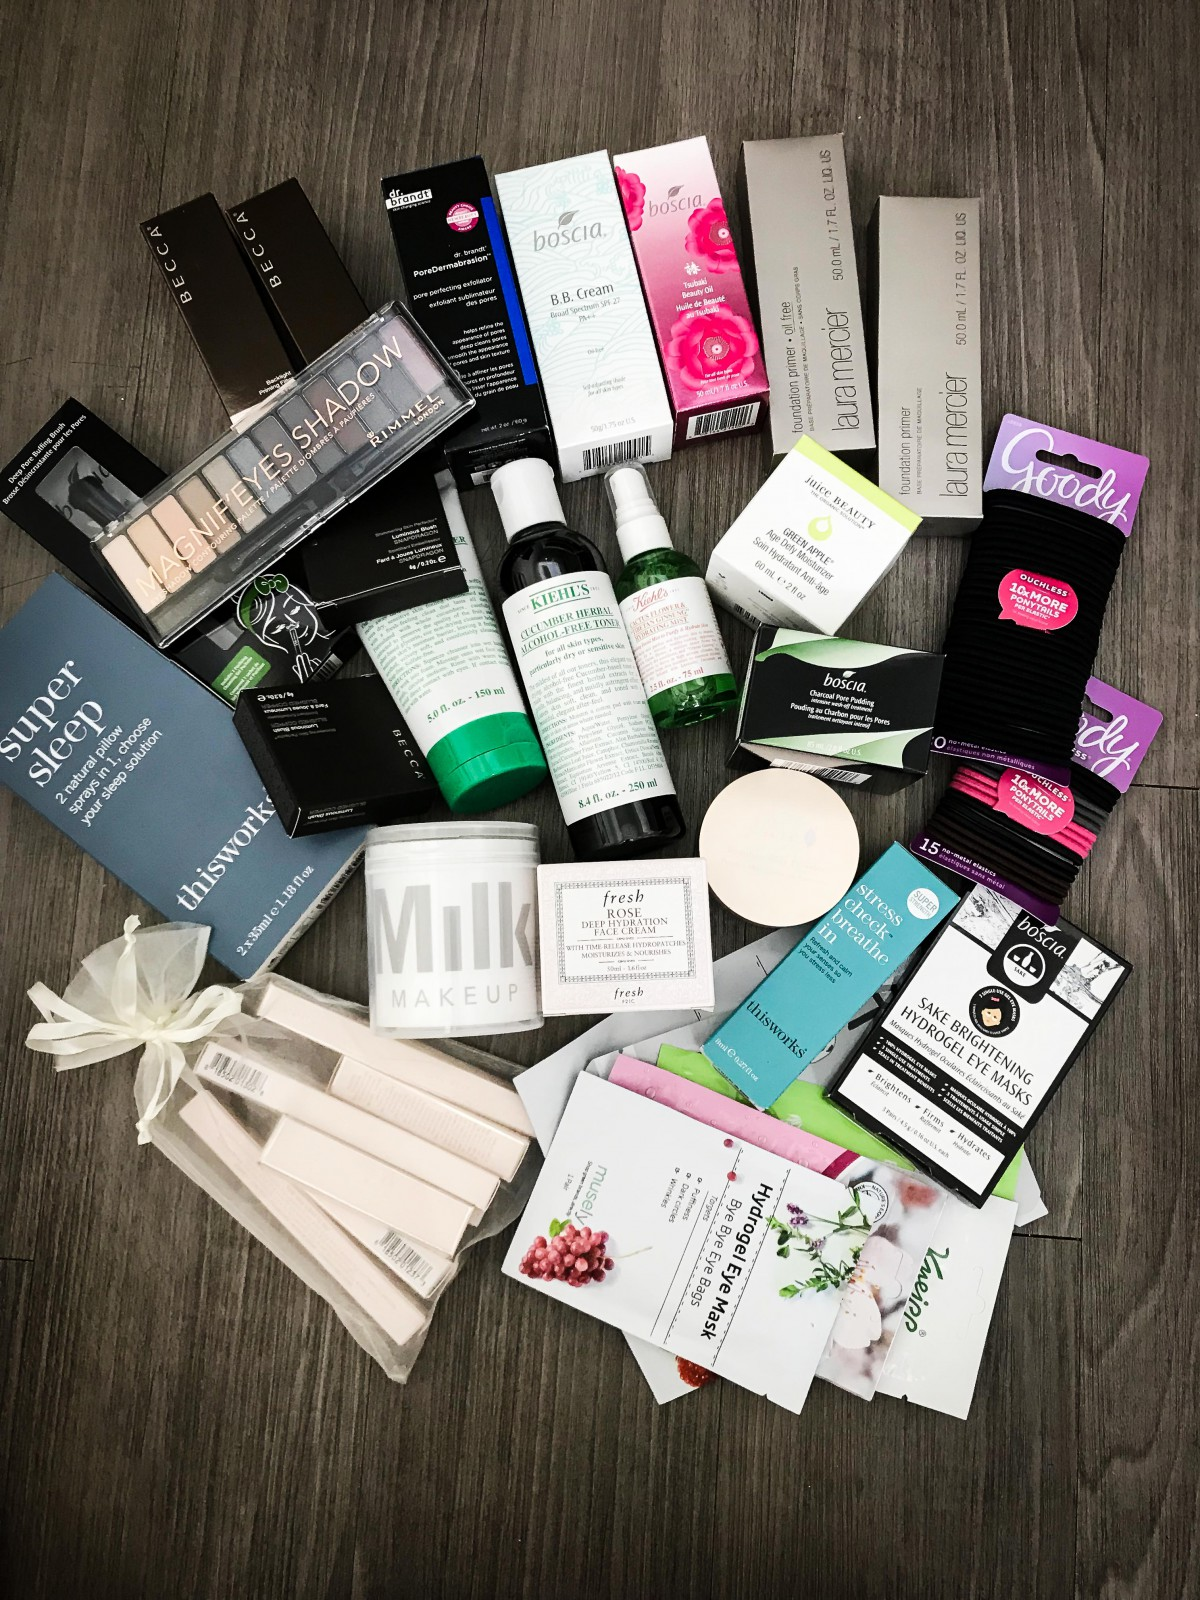 NEW IN BEAUTY JANUARY 2018 GIVEAWAY